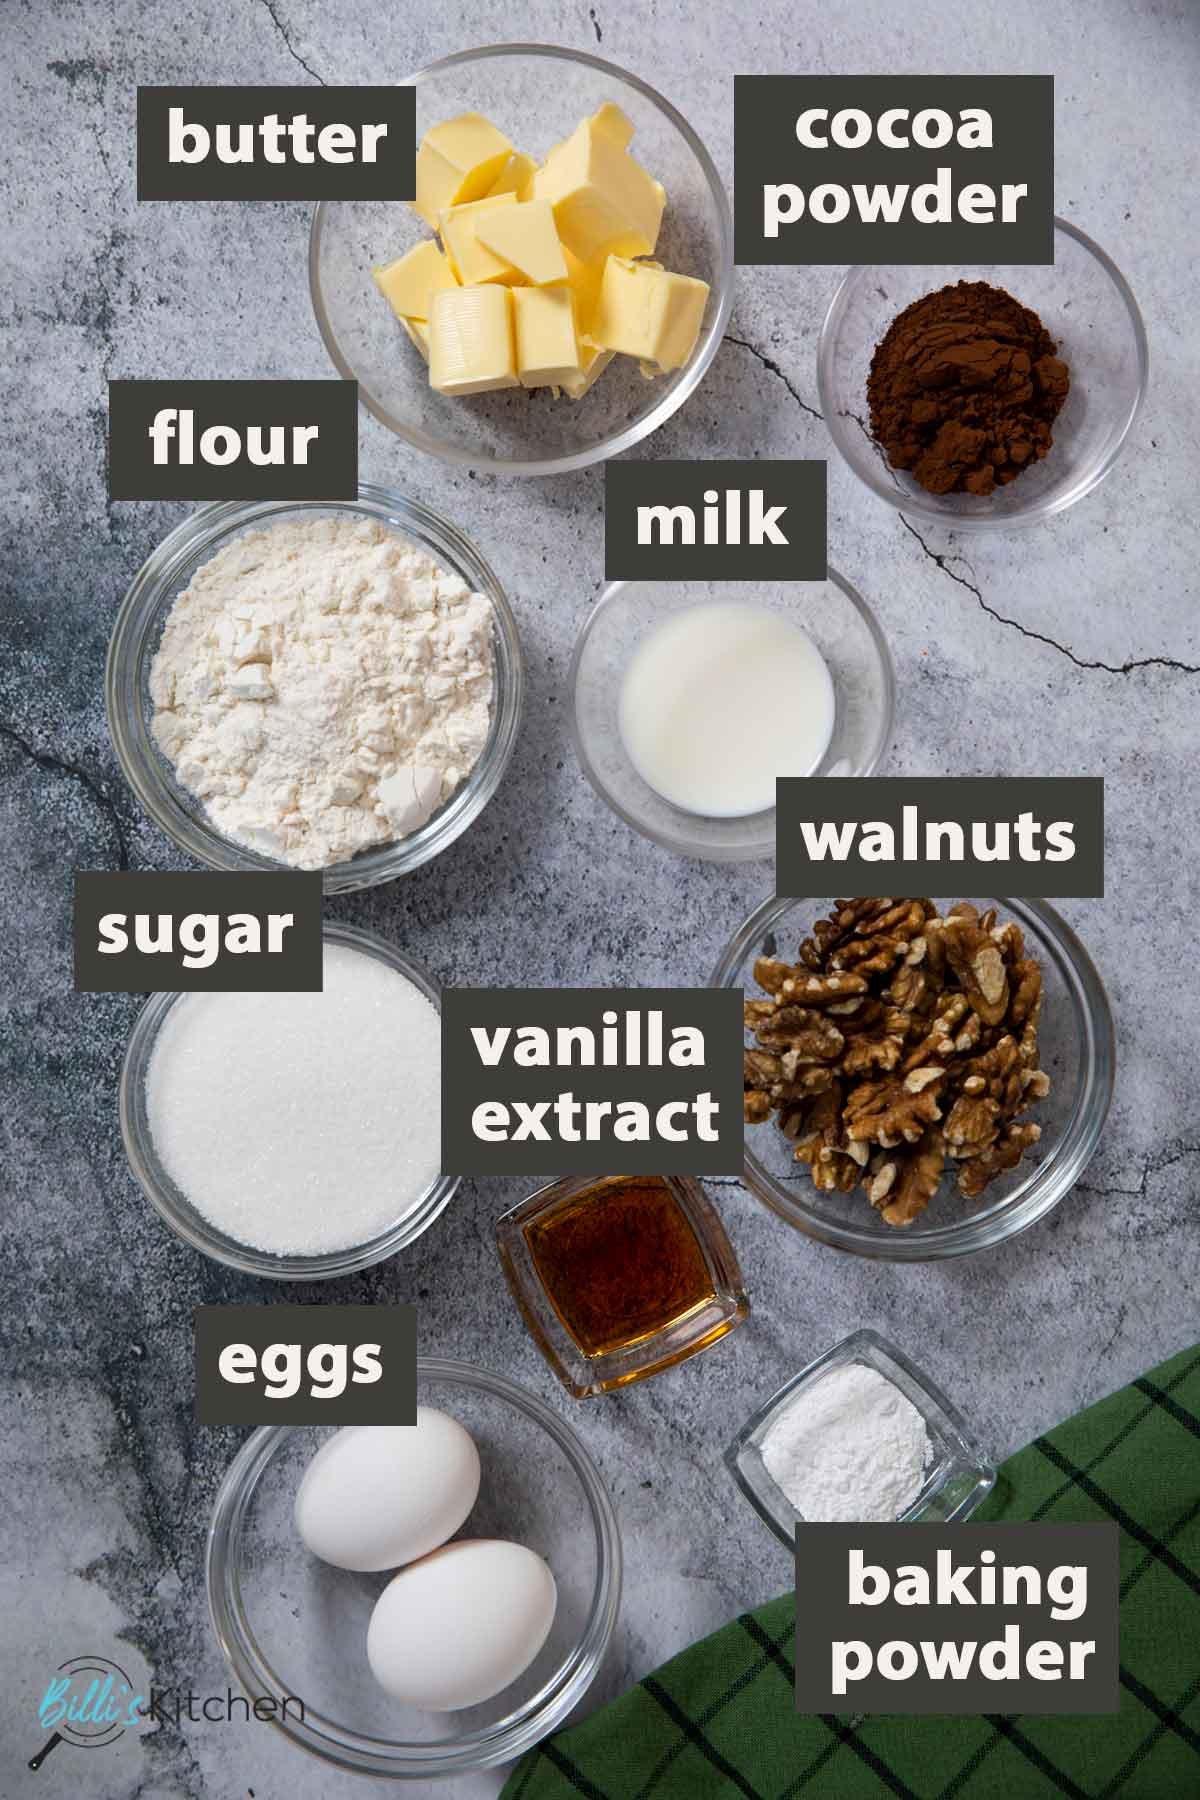 An image showing all the ingredients you need to prepare chocolate walnut butter cake at home.